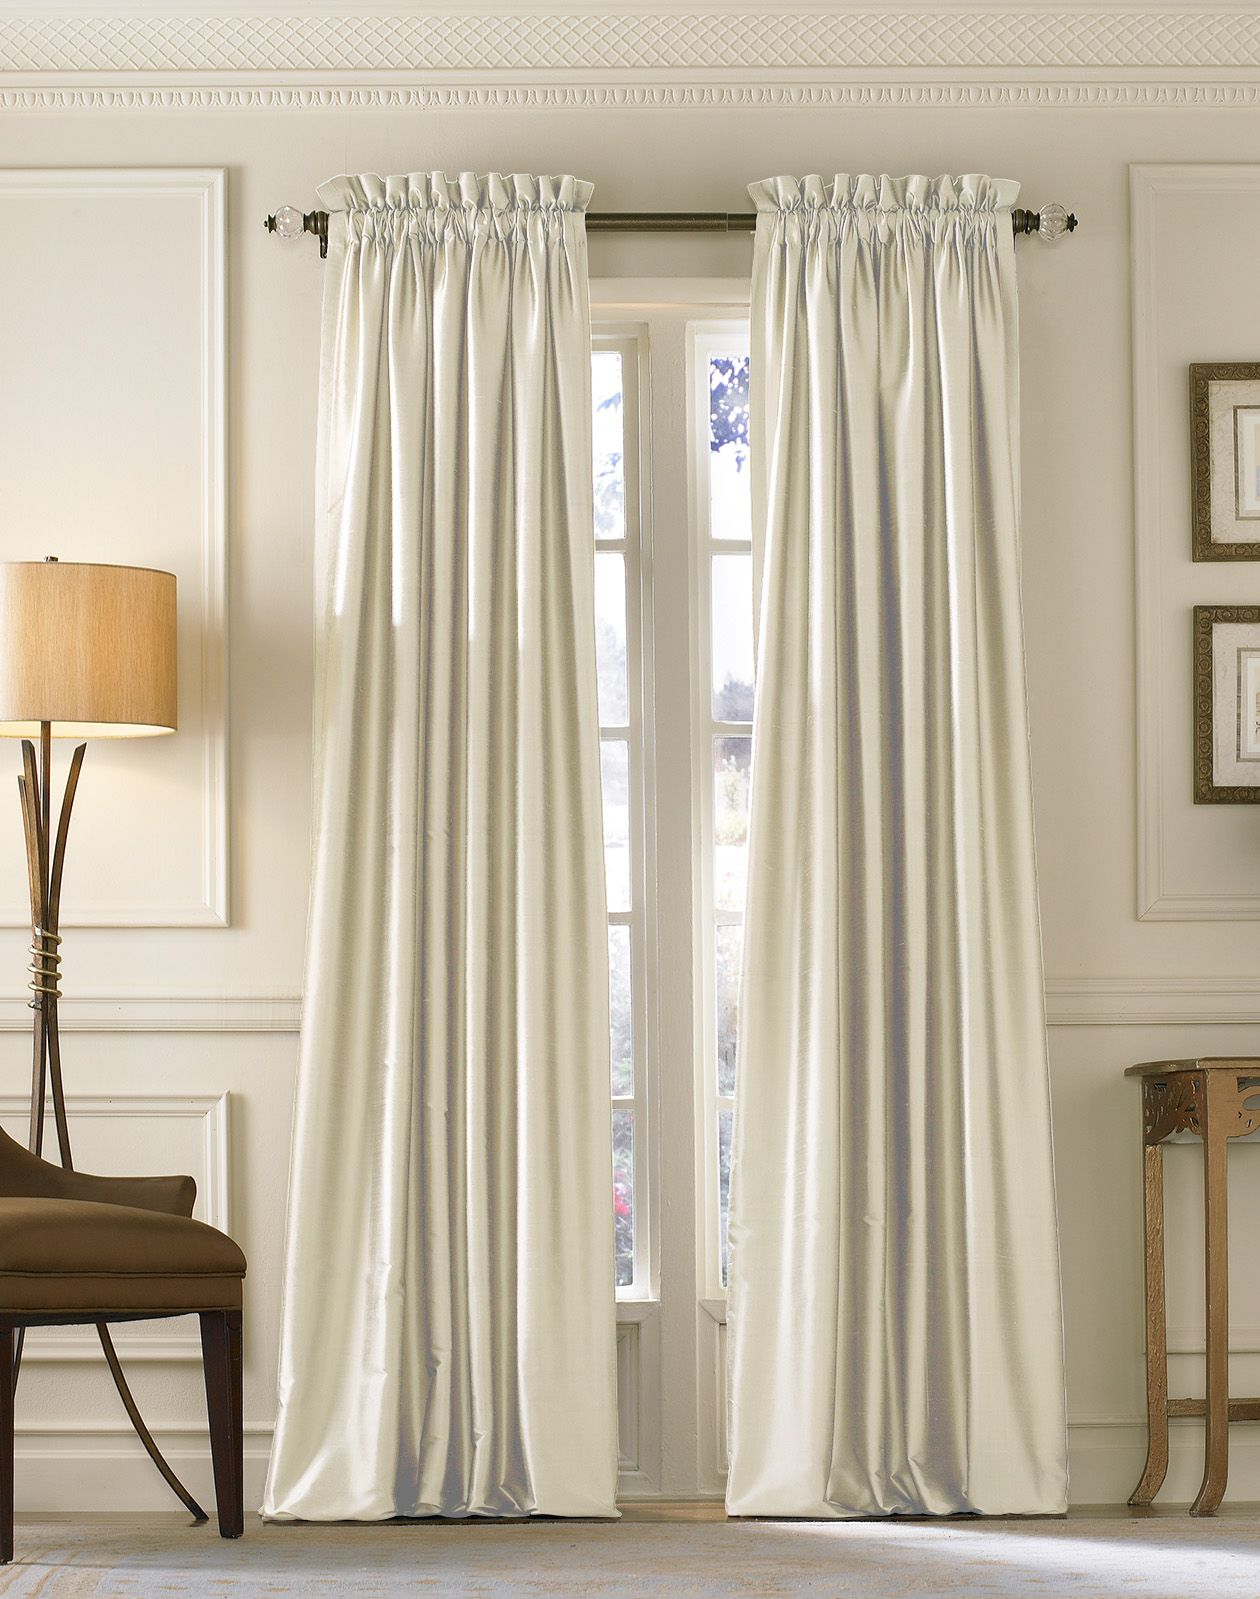 Image result for WHITE SAND SILK CURTAINS